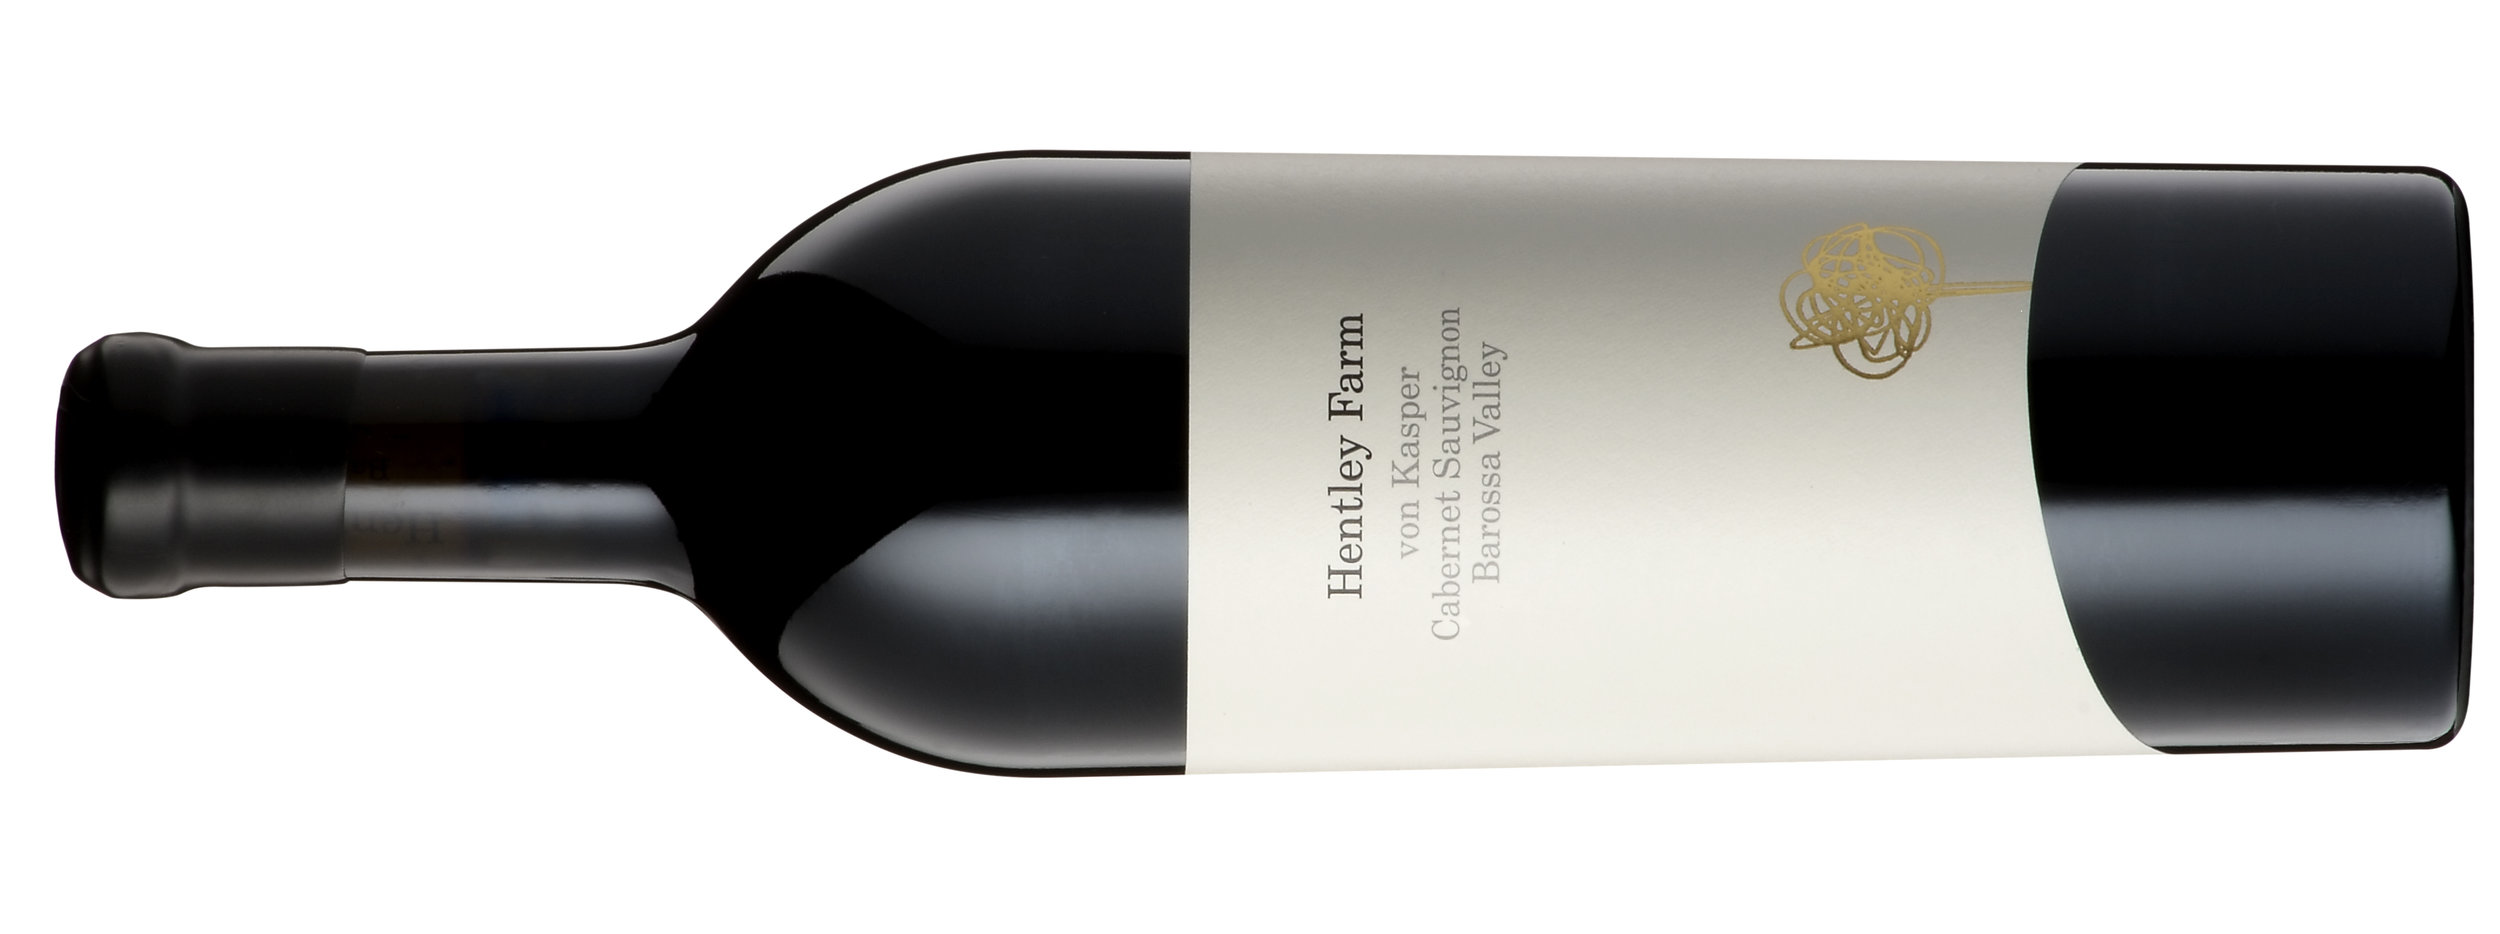 HENTLEY FARM VON KASPER CABERNET SAUVIGNON |    ヘントリーファーム ザ フォン カスパー カベルネ ソーヴィヨン   バロッサヴァレー, グリーノック クリーク  ¥ 18,000, 2016, 750ml 14.5%,  前面に出てくるフレッシュな黒すぐりと森の下生えのニュアンスに、杉、ドライタイムとセージ、ナツメグとピーマンのような香りがたっぷり表現されたスパイシーなカベルネ。 がっしりとしたタンニン、しっかりとした酸味、フルボディできれいなストラクチャーを持ち、噛めるような仕上がりです。   James Suckling 94 points   Hand-picked, inoculated and natural yeast, 1-2 days, 100% destemmed, new (35%) and old French barrels 20 months, minimal, minimal  A spicy cabernet showing plenty of cedar, dried thyme and sage, nutmeg and peppers across a foreground of fresh blackcurrants and undergrowth. Full-bodied and very nicely structured with firm andsturdy tannins, a driven line of acidity and a chewy finish.   James Halliday 95 points   It's not until the wine has been fermented and pressed that the vinification changes from its siblings as the wine begins 22 months maturation in French oak (35% new). The colour is a deep crimson-purple, and the wine packs lethal power given its mid-range alcohol. The long, high quality cork should help the wine reach its plateau 15 or so years hence, as its blackcurrant fruit and autocratic tannins join with cedary French oak to bring it all home.